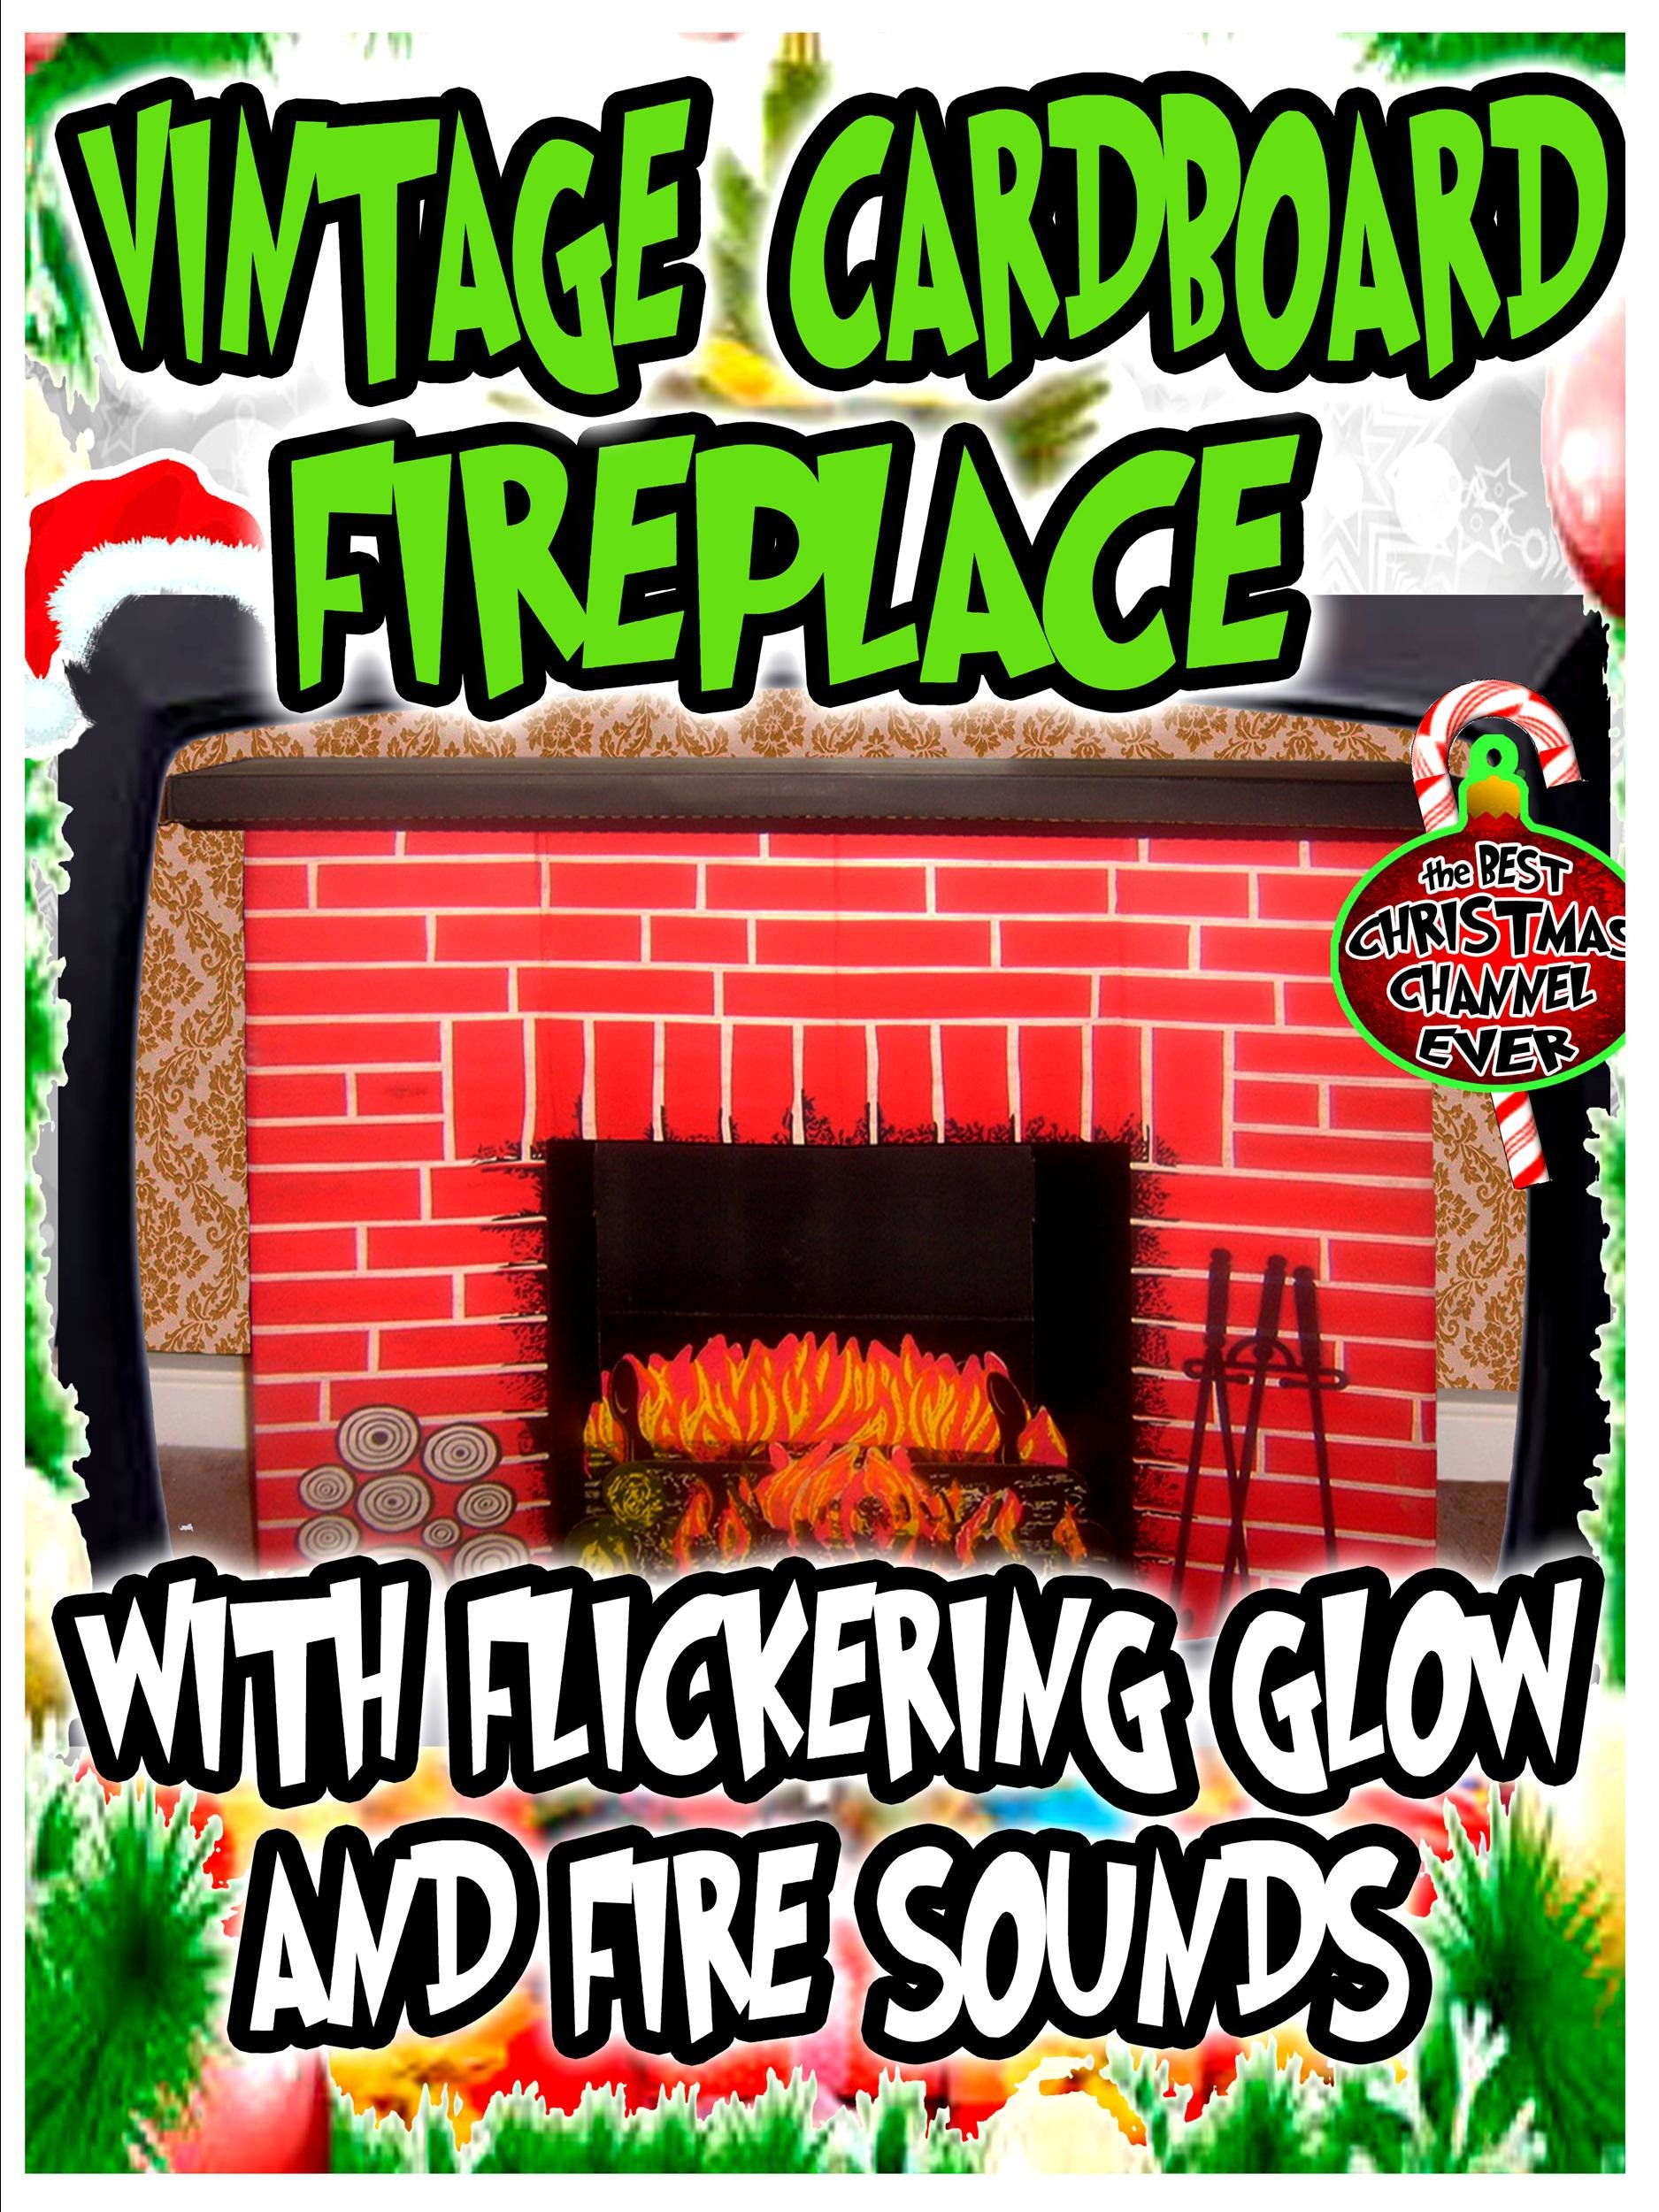 Vintage Cardboard Fireplace with flickering glow and fire sounds